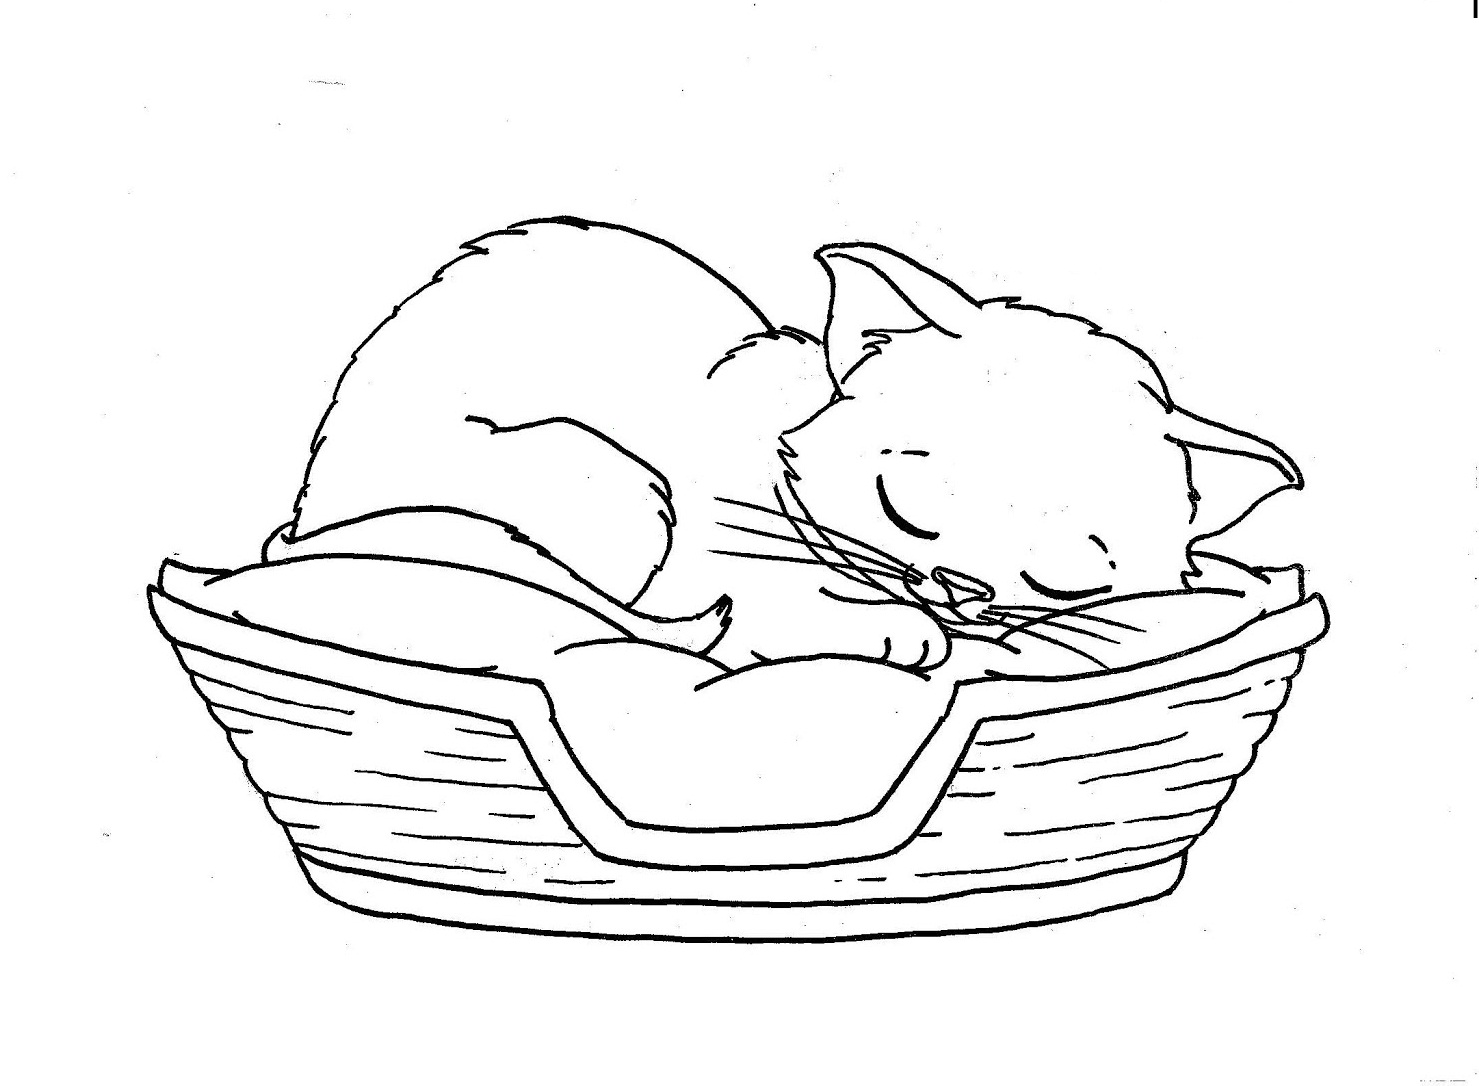 1479x1086 Cats Sleeping Coloring Picture For Kids Embroidery, Colouring